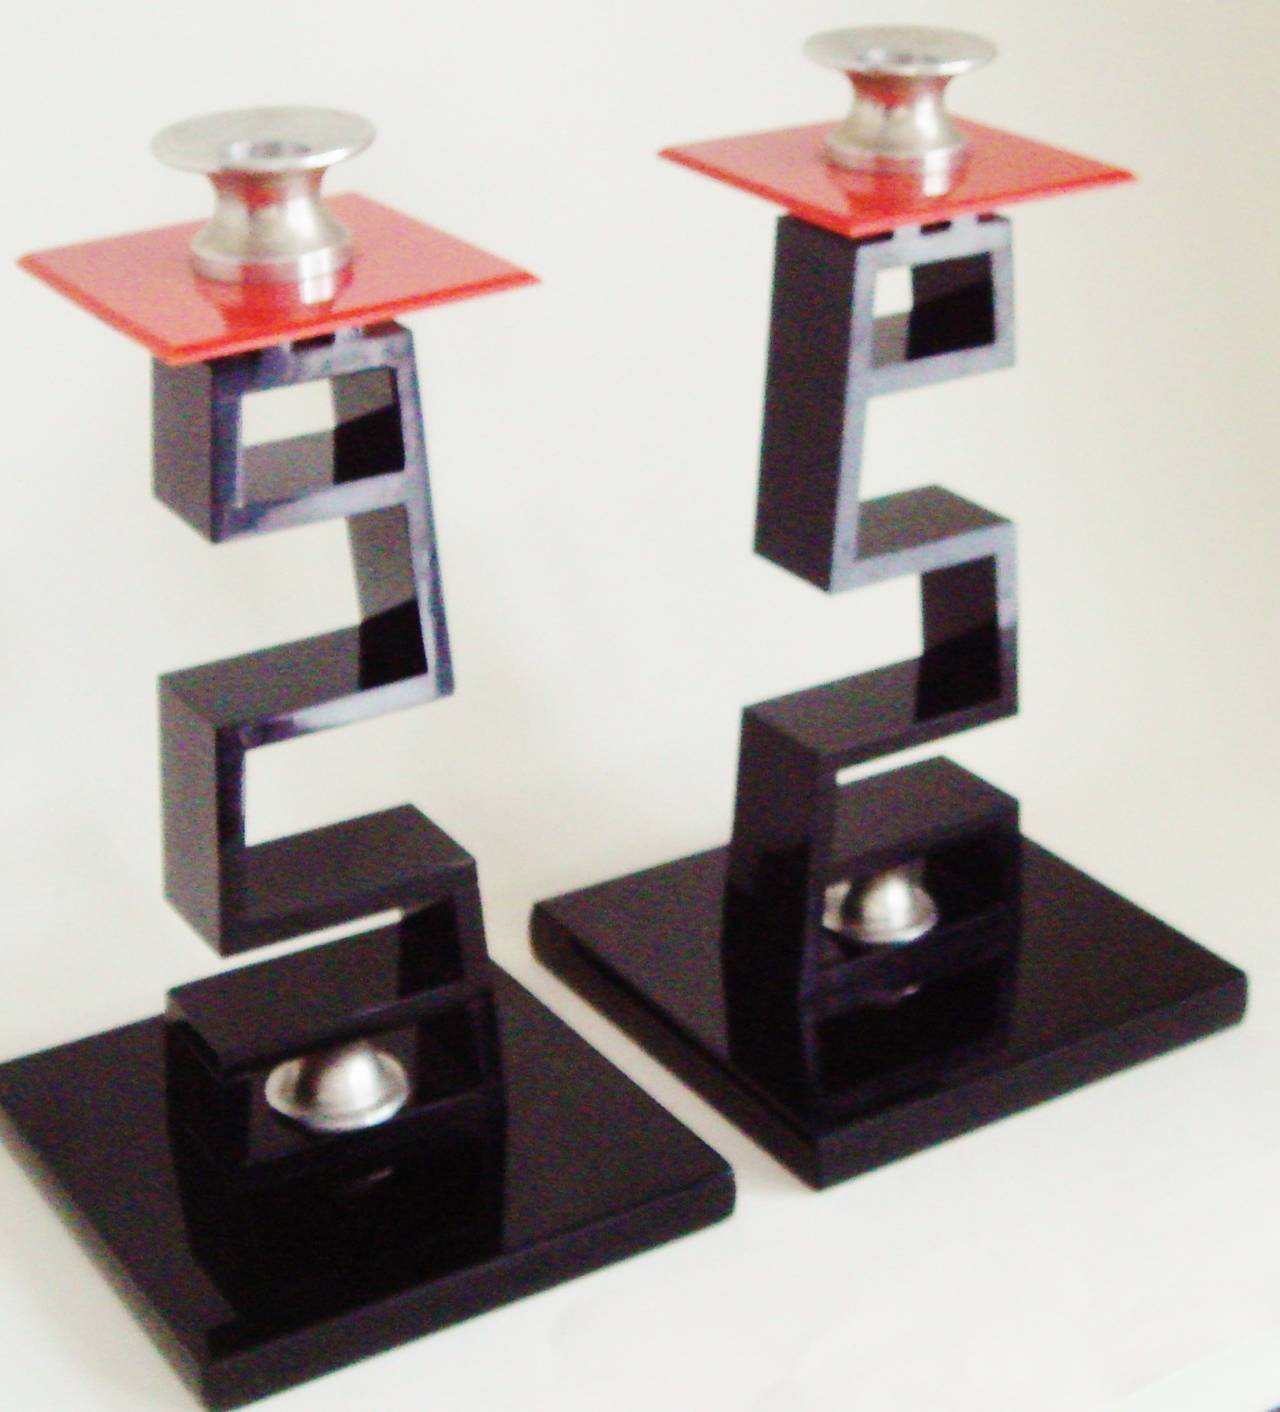 Pair of Large American Asian Inspired Candlesticks in the Manner of James Mont For Sale 2